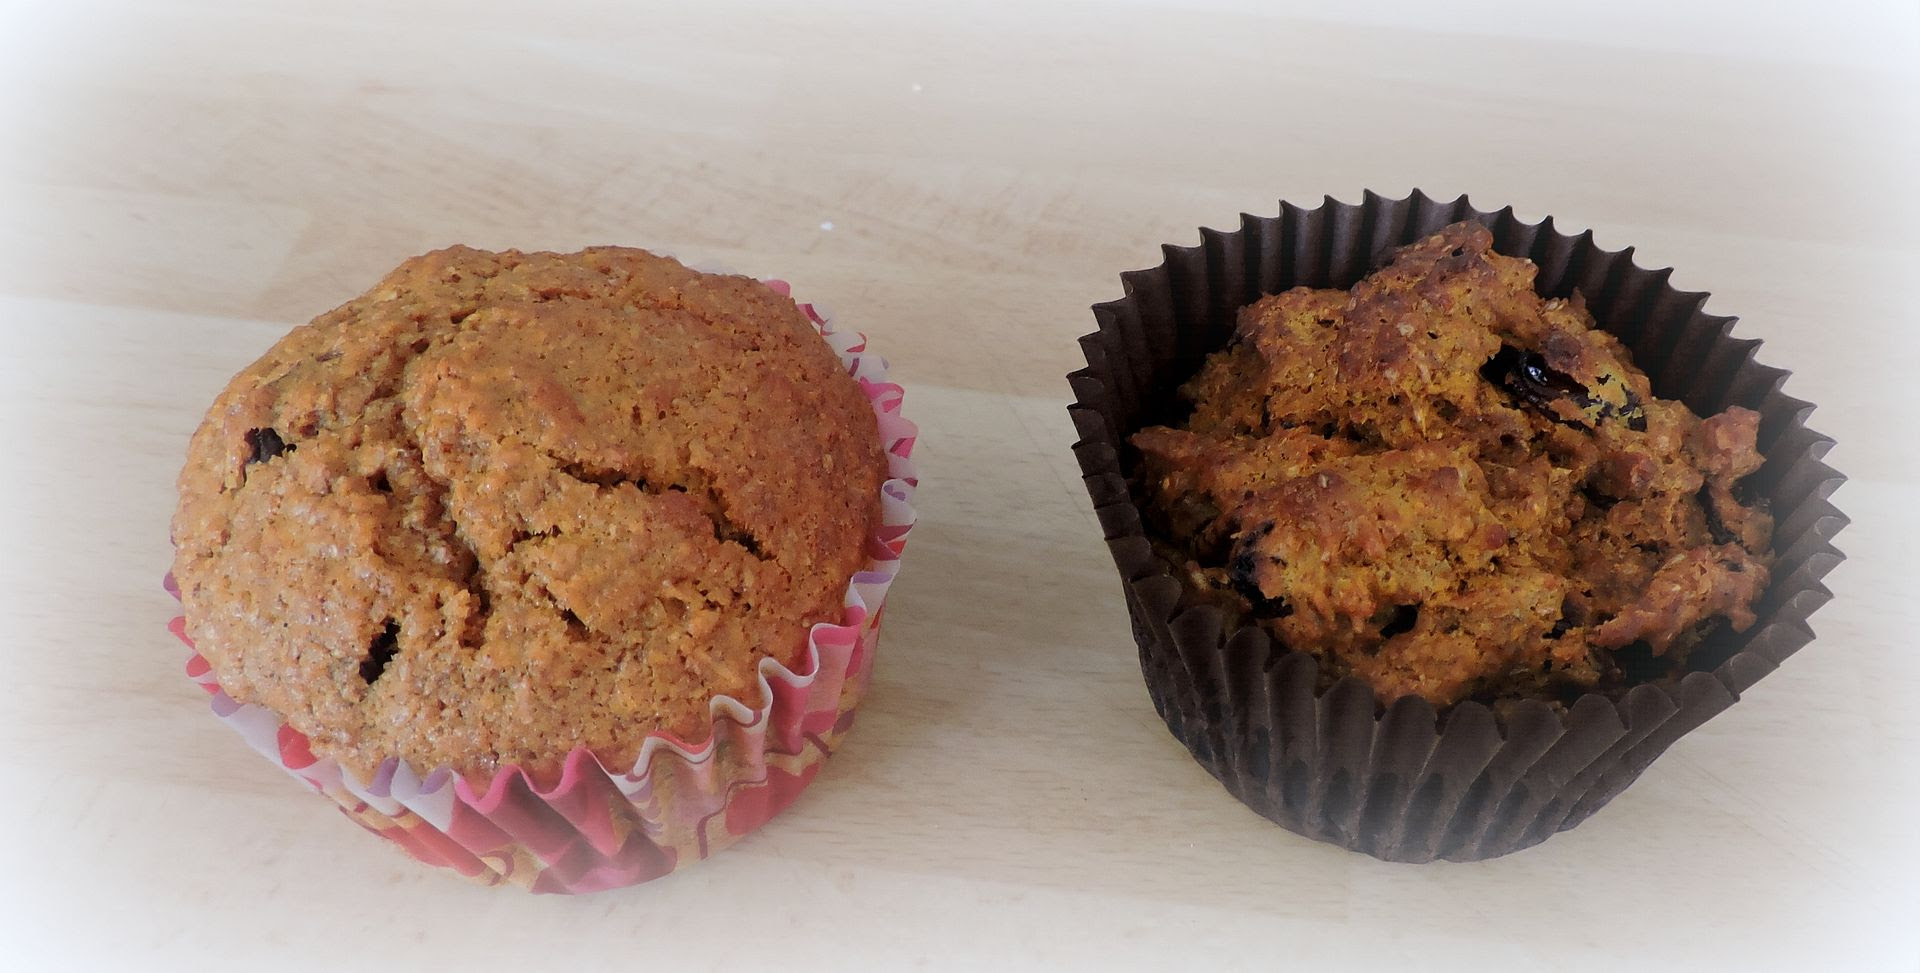 photo muffin comparison_zpsuolapntt.jpg